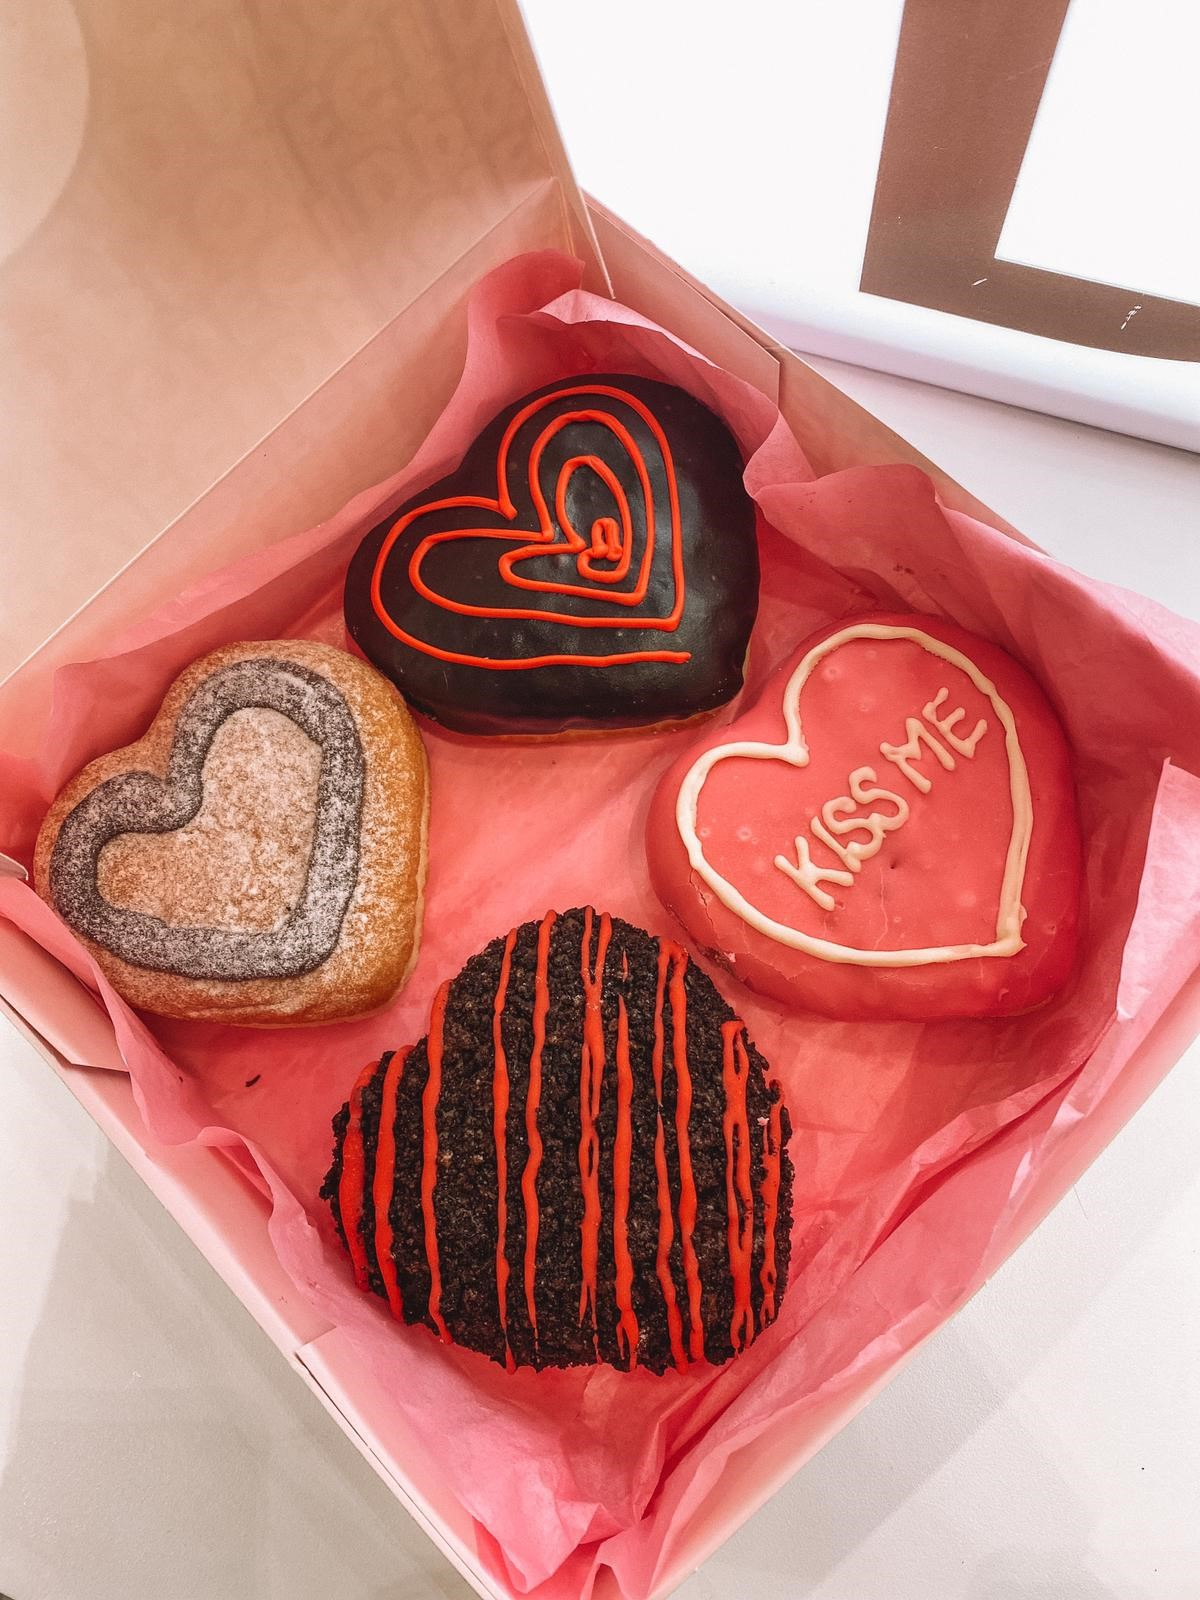 Some of the new Valentine's Day doughnuts which are on sale now